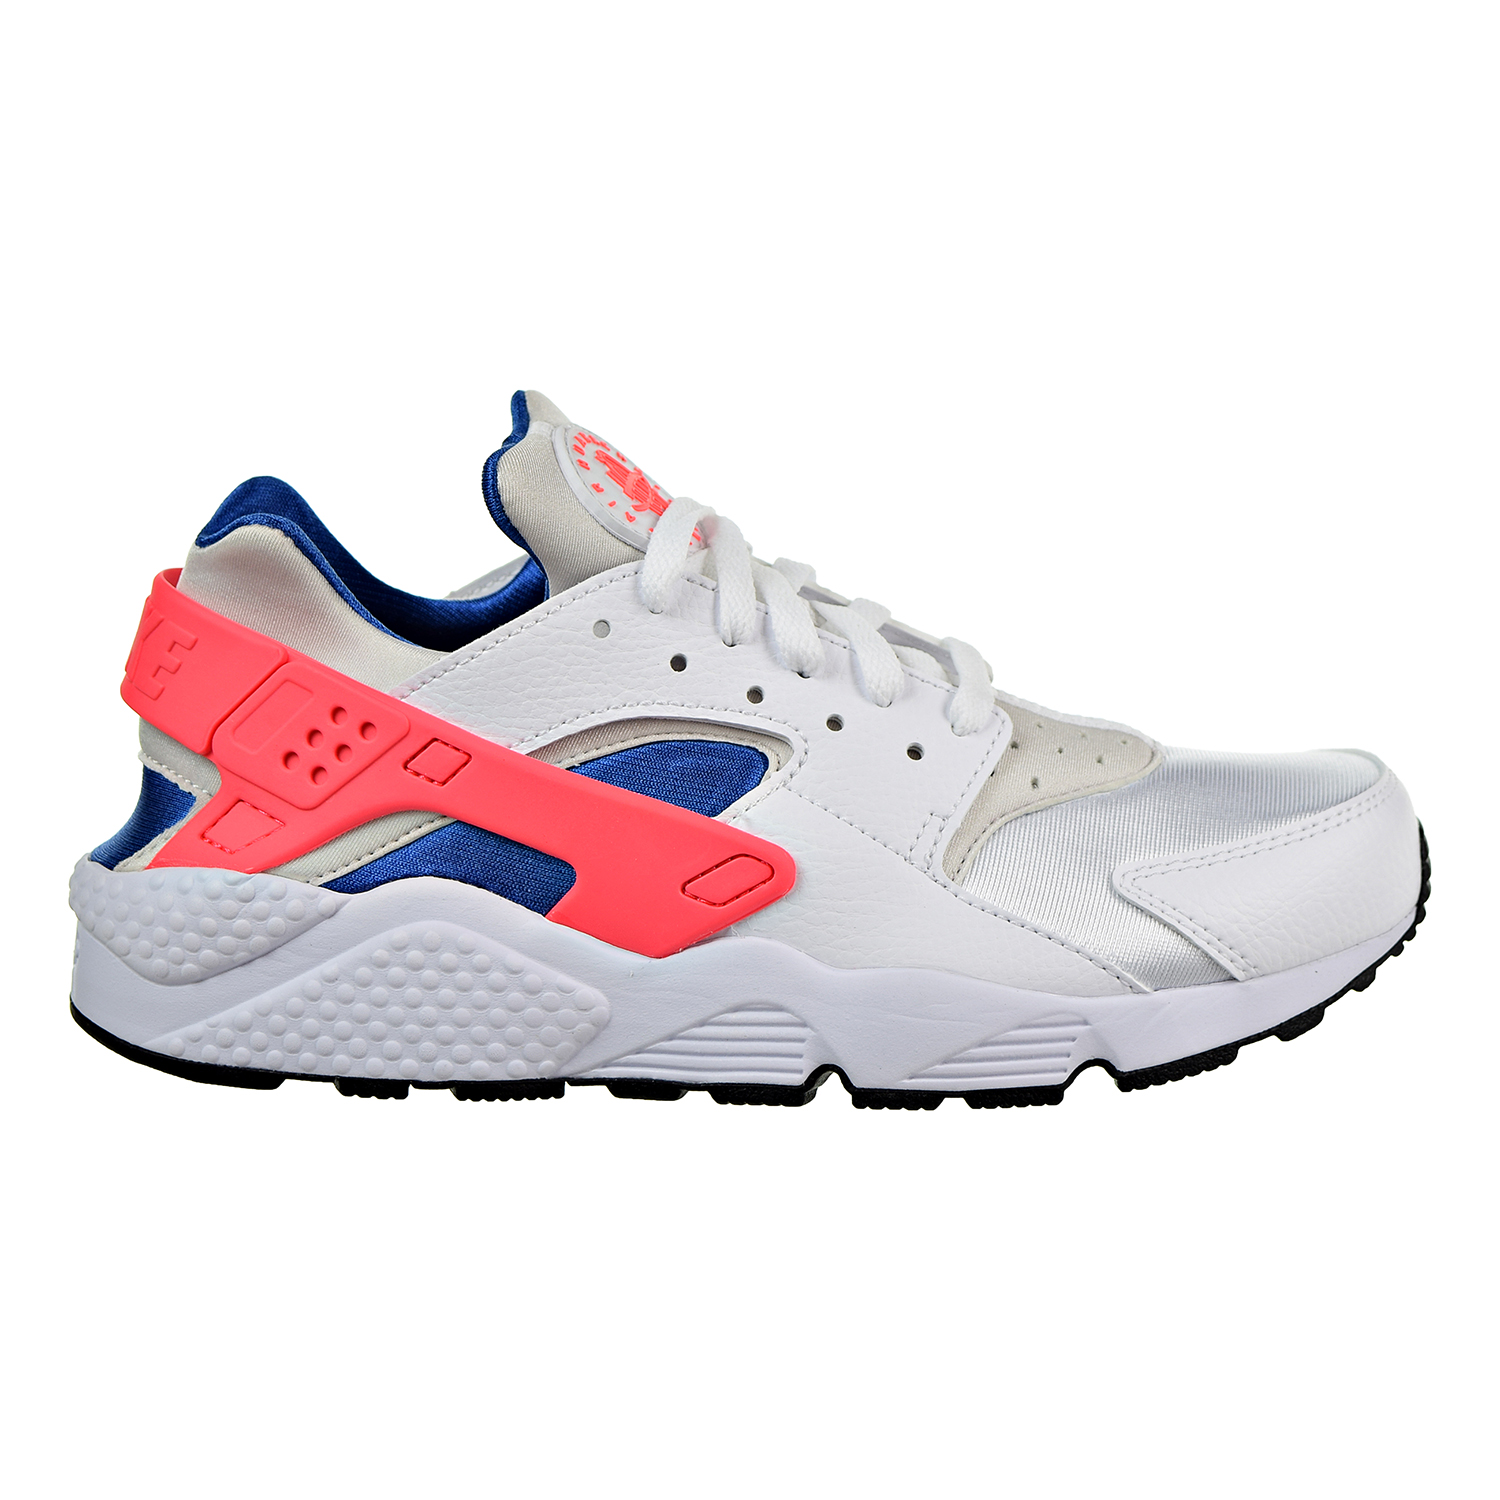 competitive price a6c0b 9be6d Nike Air Huarache Men s Running Shoes White Ultramarine Solar Red  318429-112 by Nike